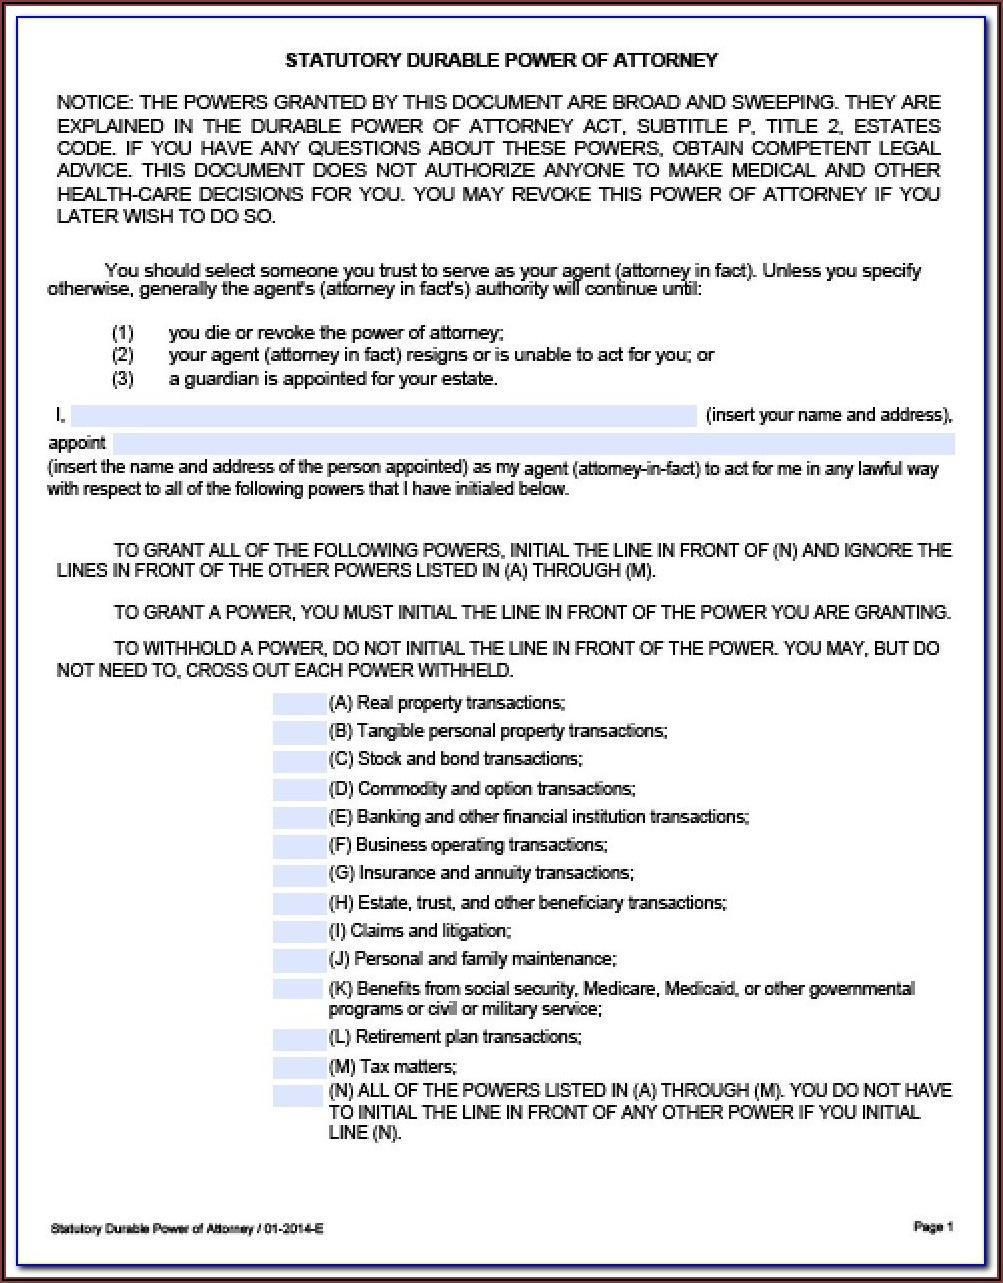 Texas Statutory Durable Power Of Attorney Form 2020